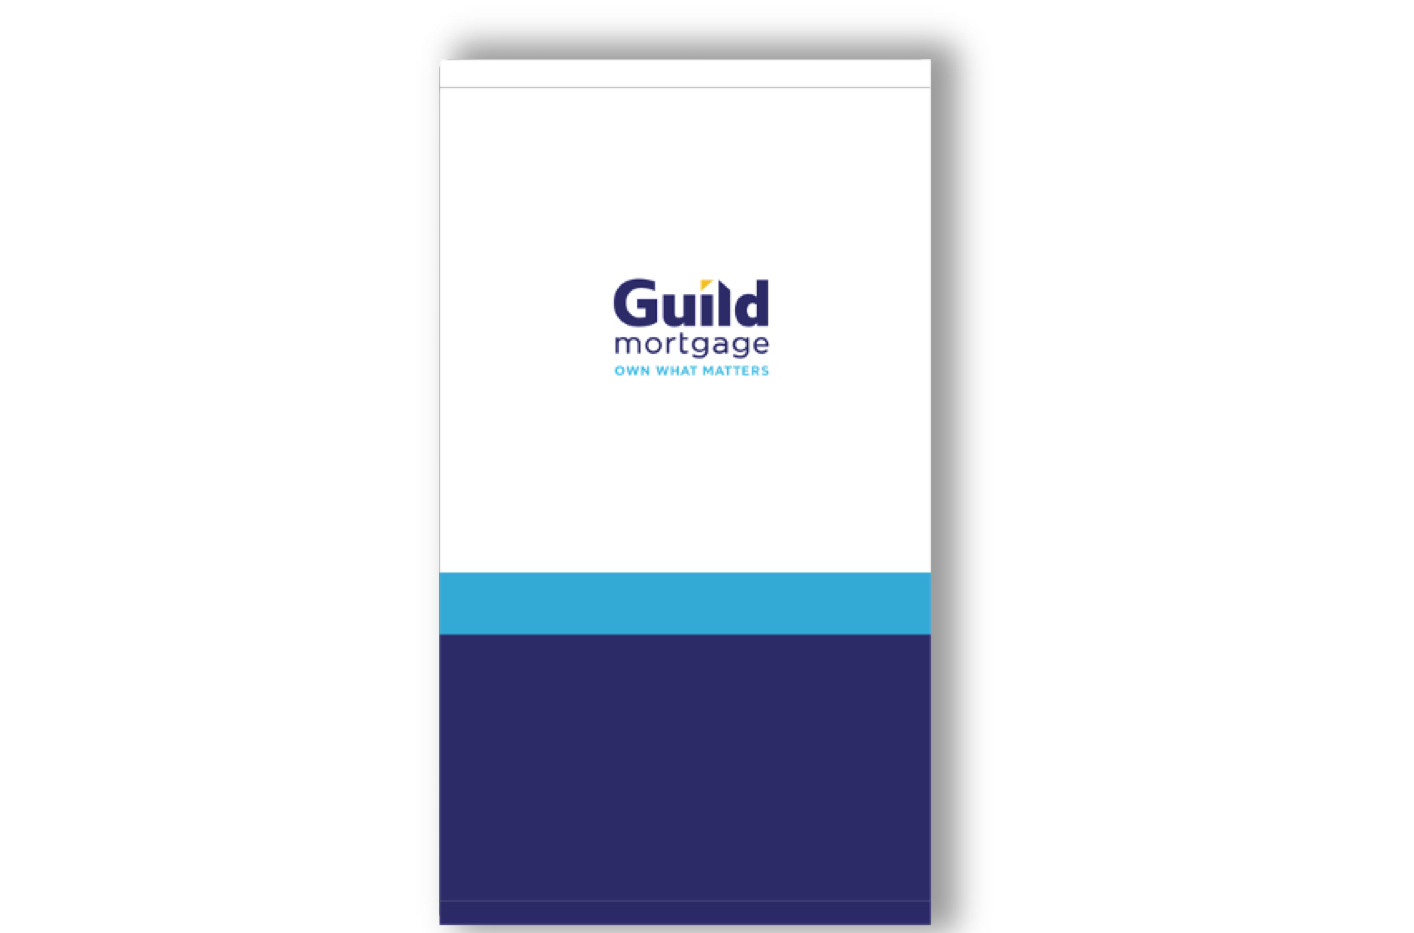 Guild Mortgage Gift Box PDP Image.jpg